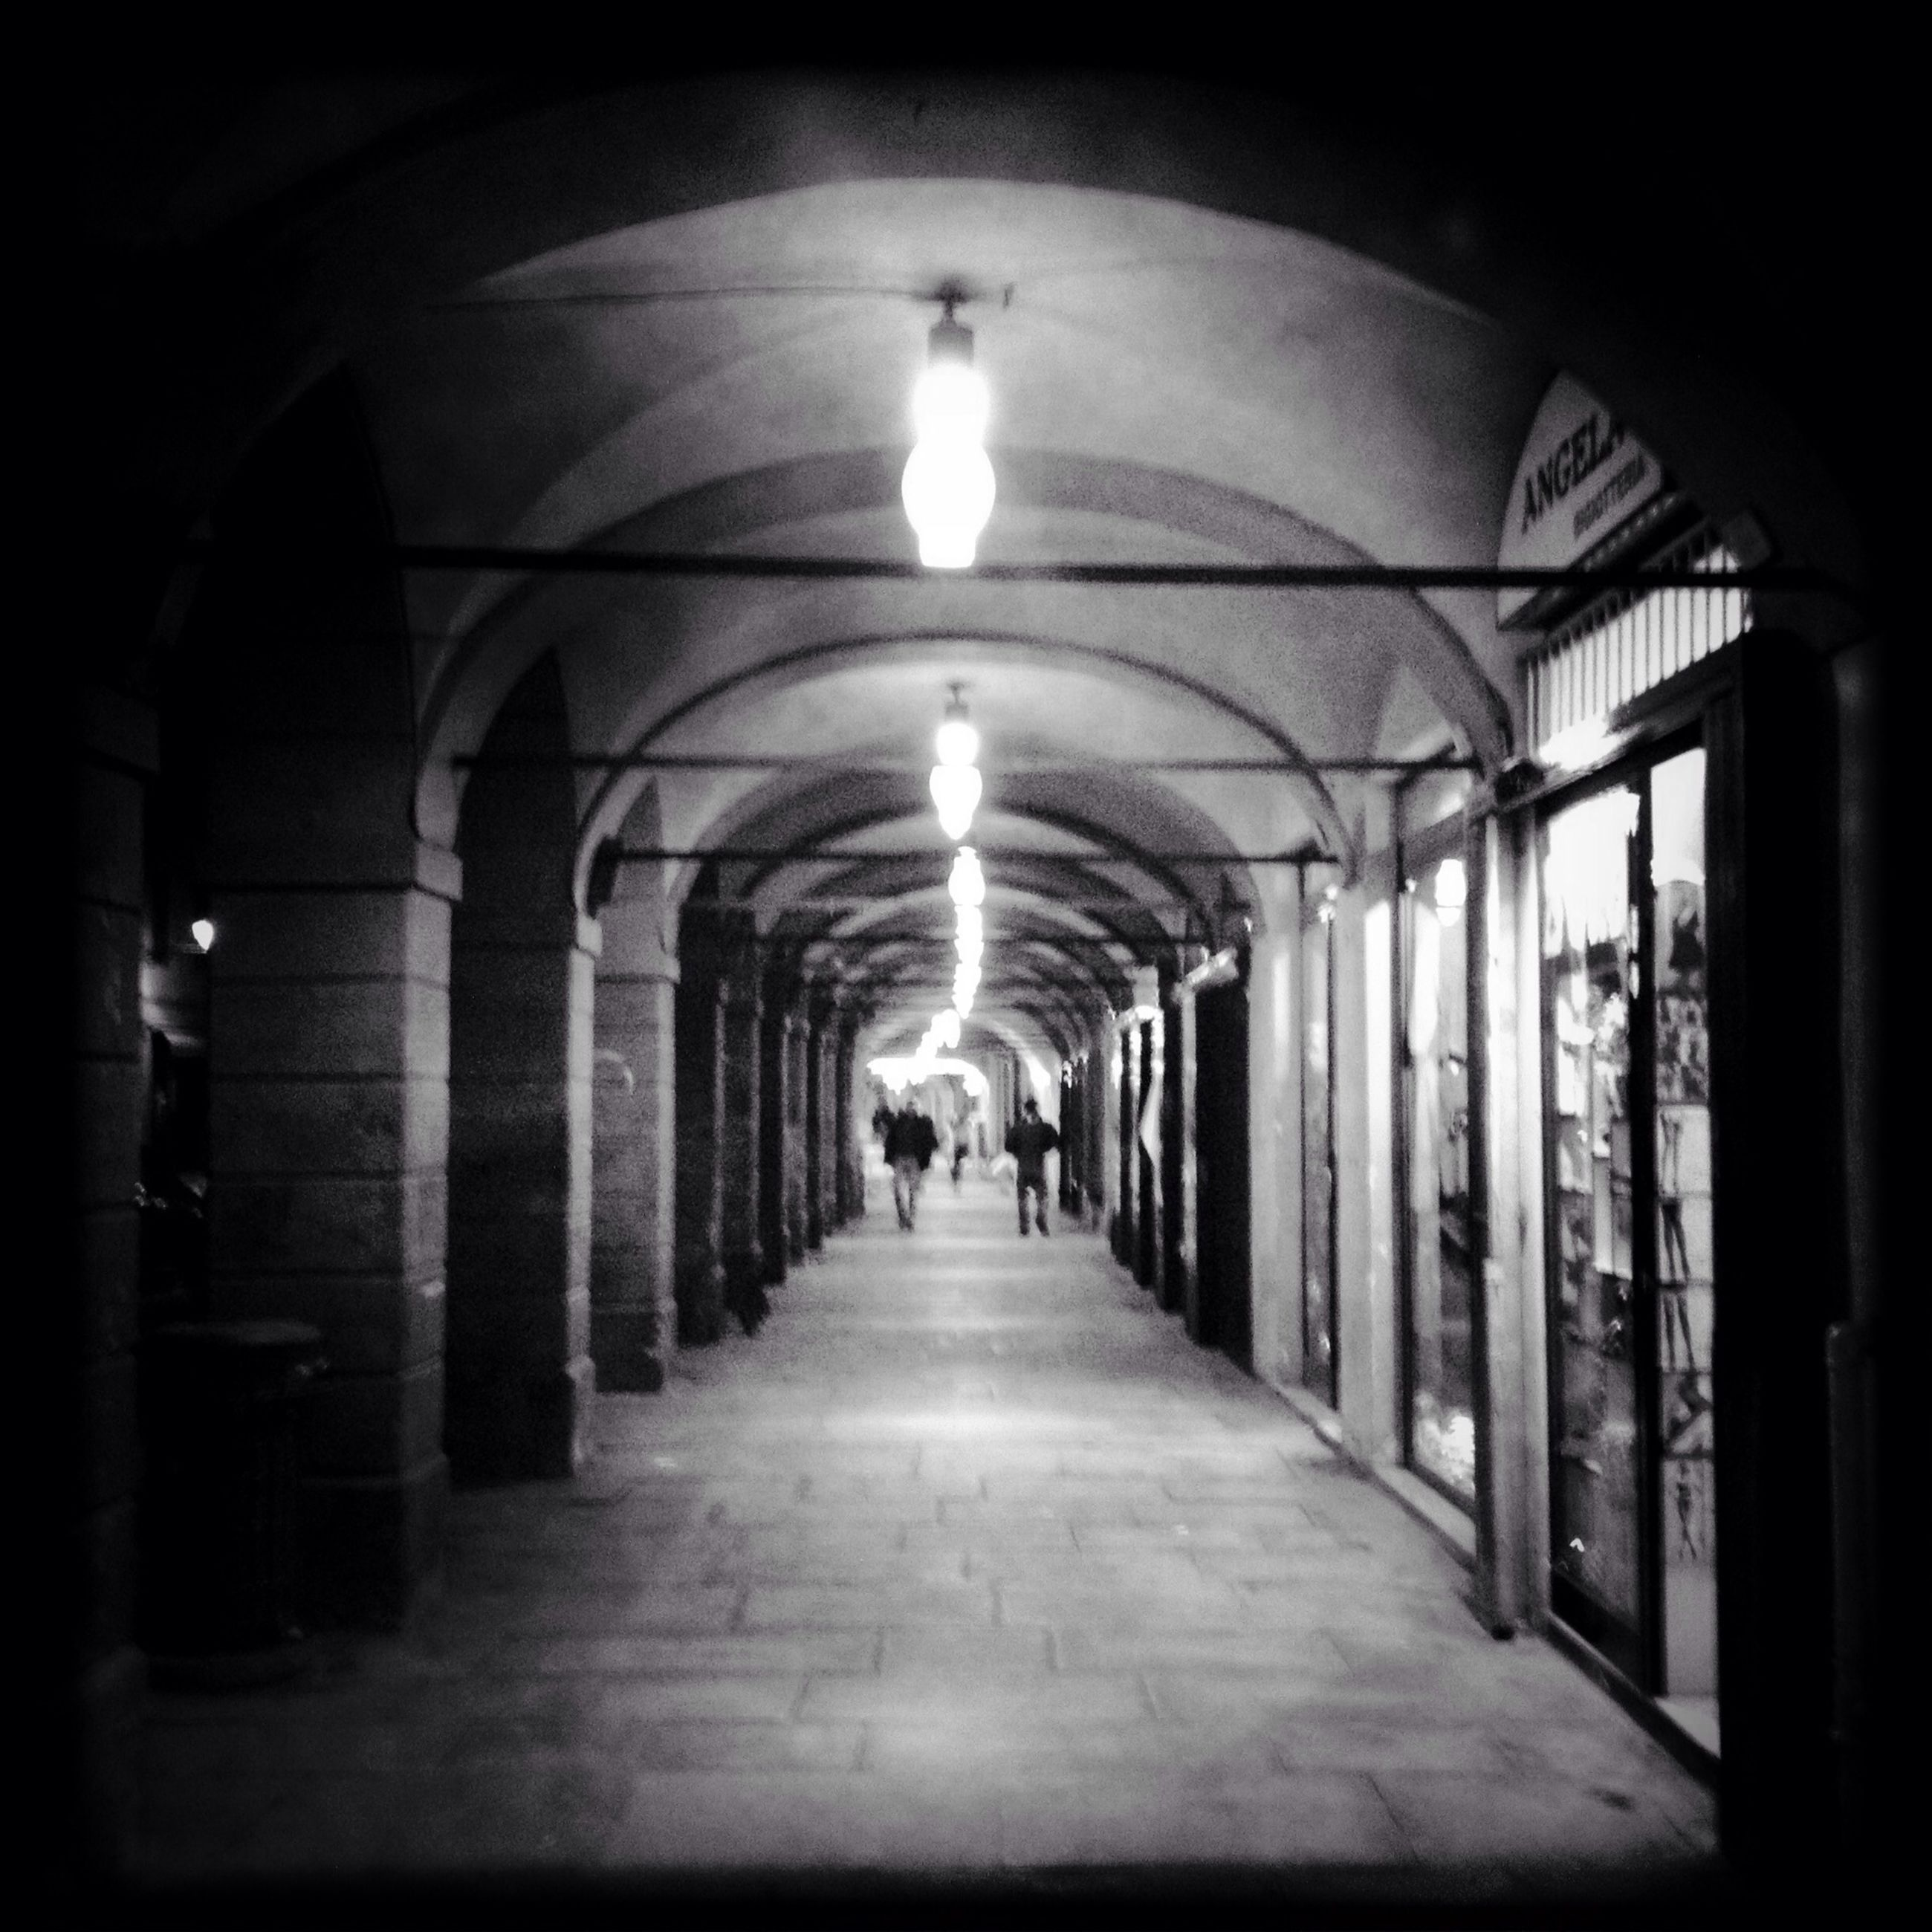 indoors, arch, the way forward, architecture, corridor, built structure, illuminated, ceiling, diminishing perspective, lighting equipment, in a row, archway, tunnel, architectural column, vanishing point, incidental people, colonnade, empty, walkway, flooring